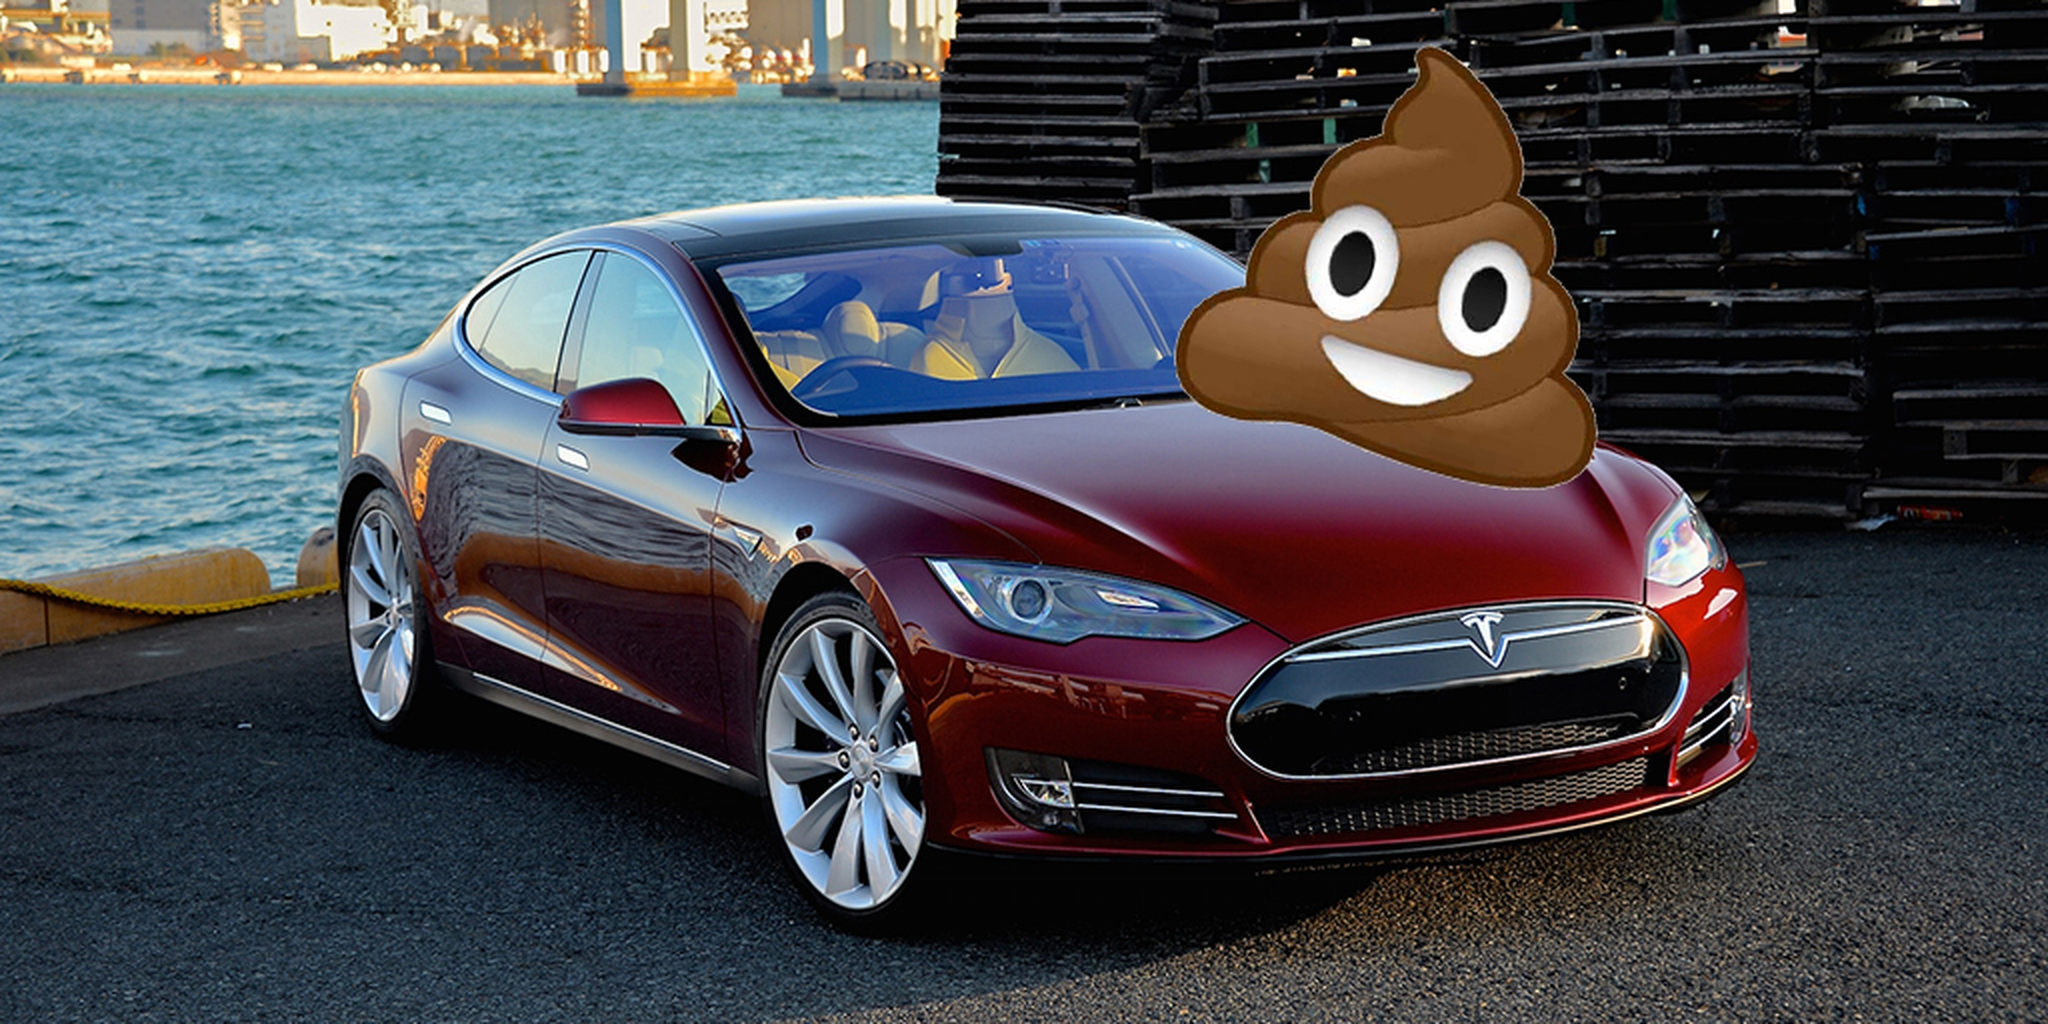 Chicago Man Vows To Hunt Down Whoever Pooped On His Tesla